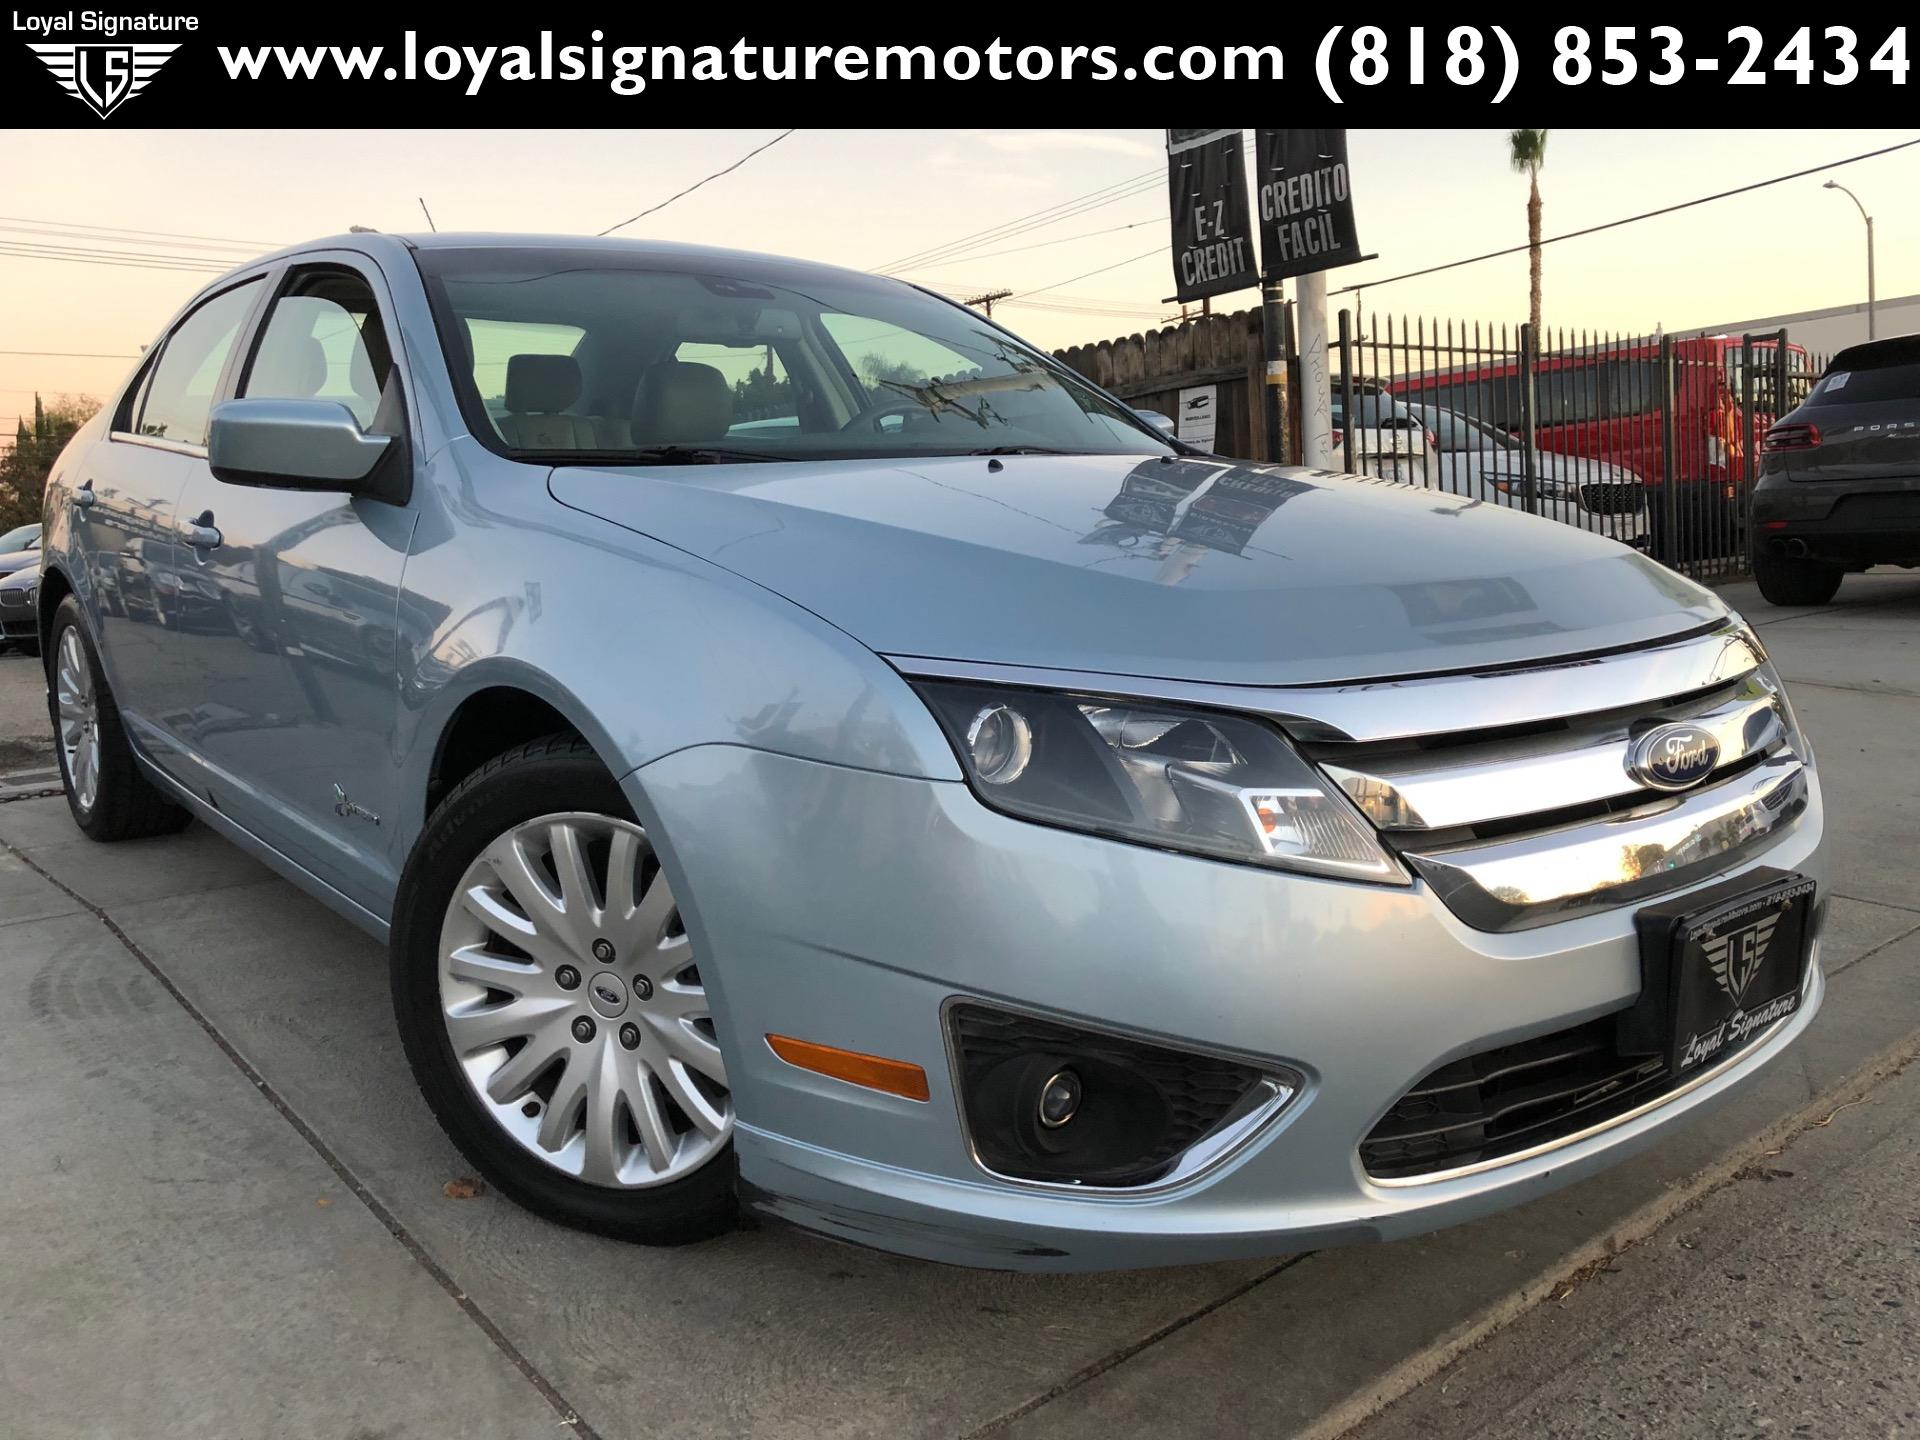 Used 2011 ford fusion hybrid